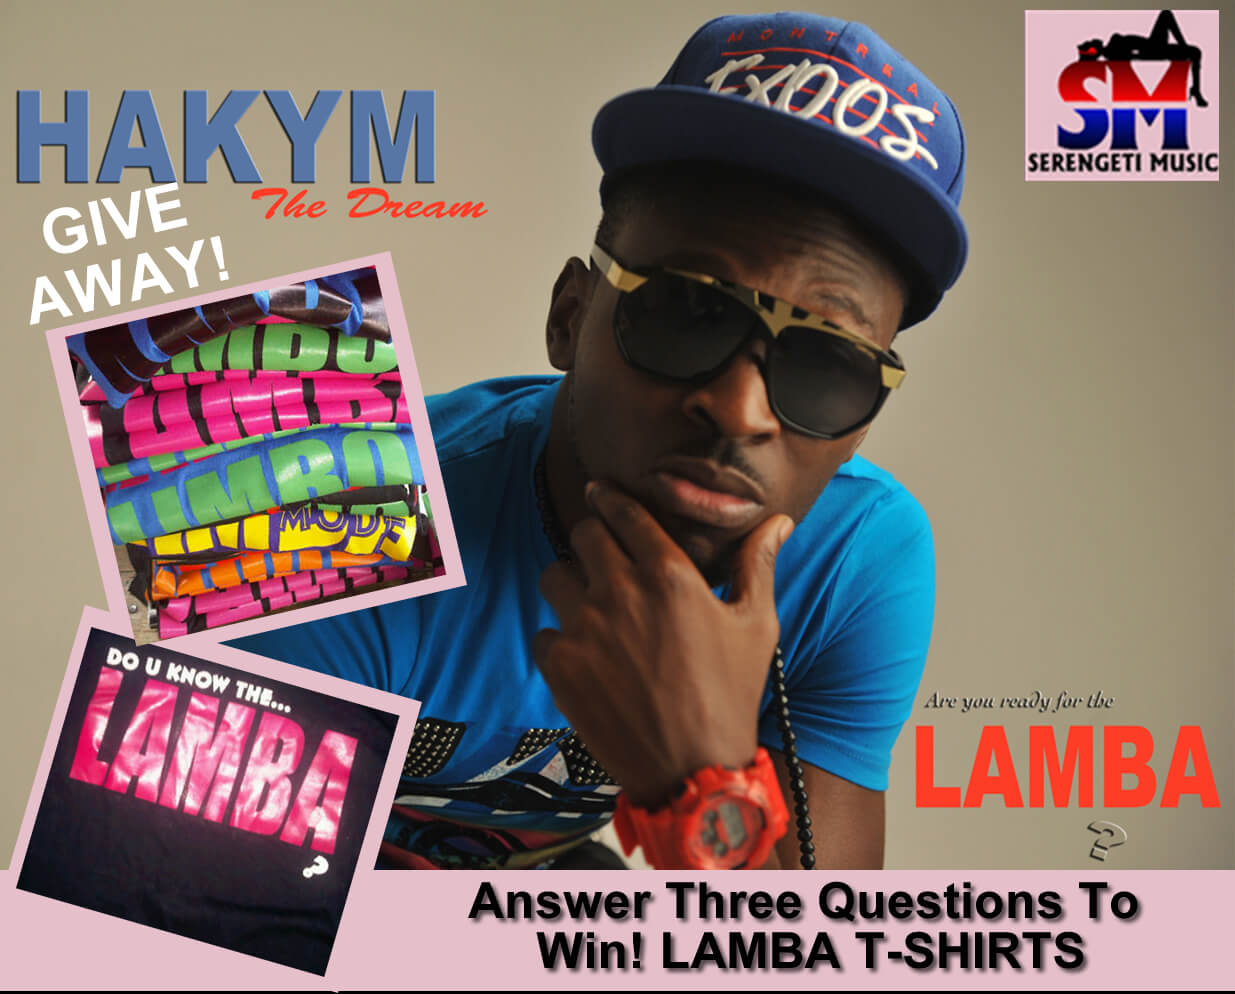 hakym lamba give away